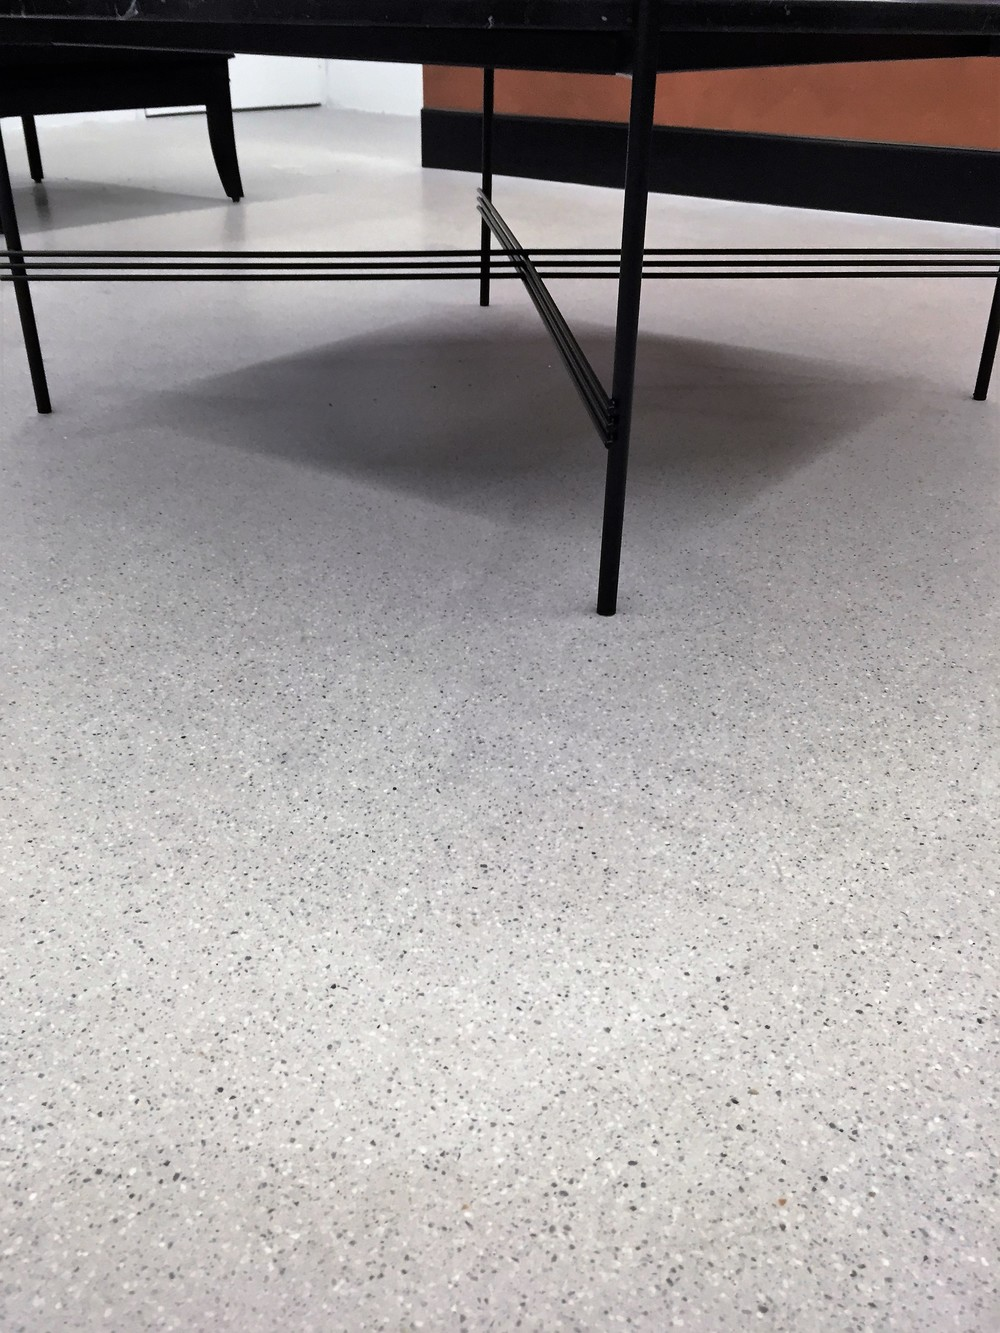 Office in Sydney CBD lvl 25 / Installed by Diamond Shine. Pietra (custom)  with 3mm Dove aggregate.